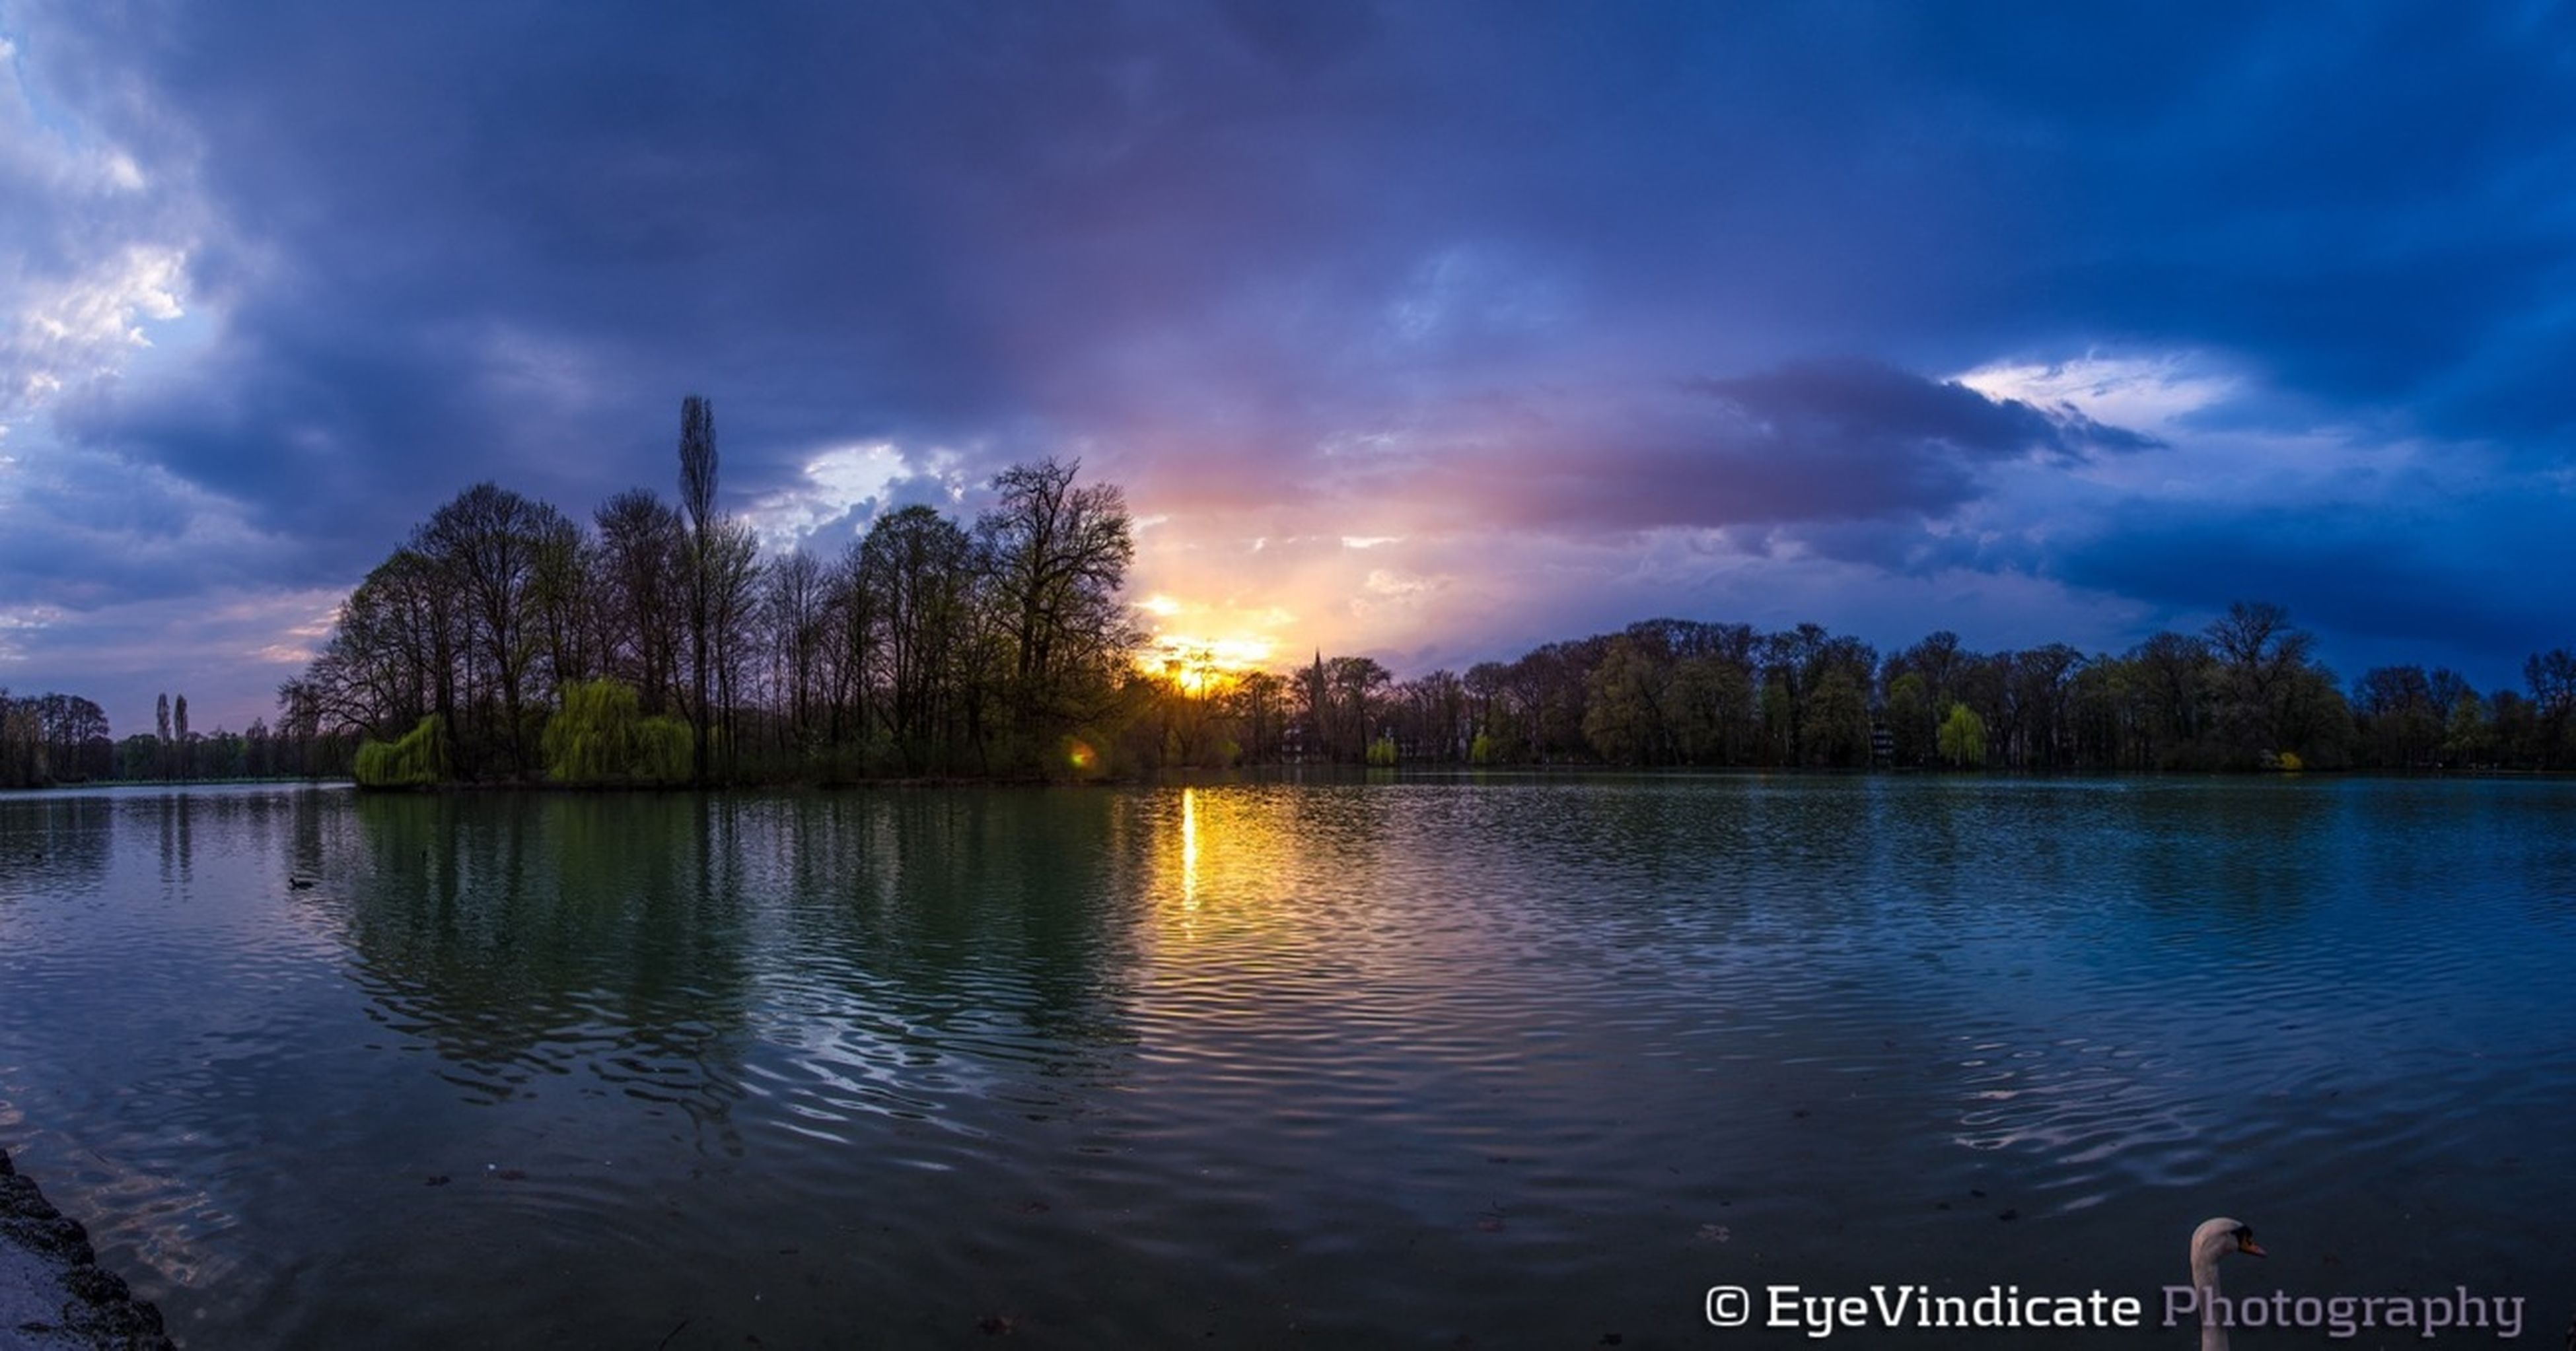 sky, water, sunset, tree, cloud - sky, waterfront, scenics, tranquil scene, tranquility, lake, beauty in nature, reflection, silhouette, building exterior, nature, built structure, cloud, architecture, river, cloudy